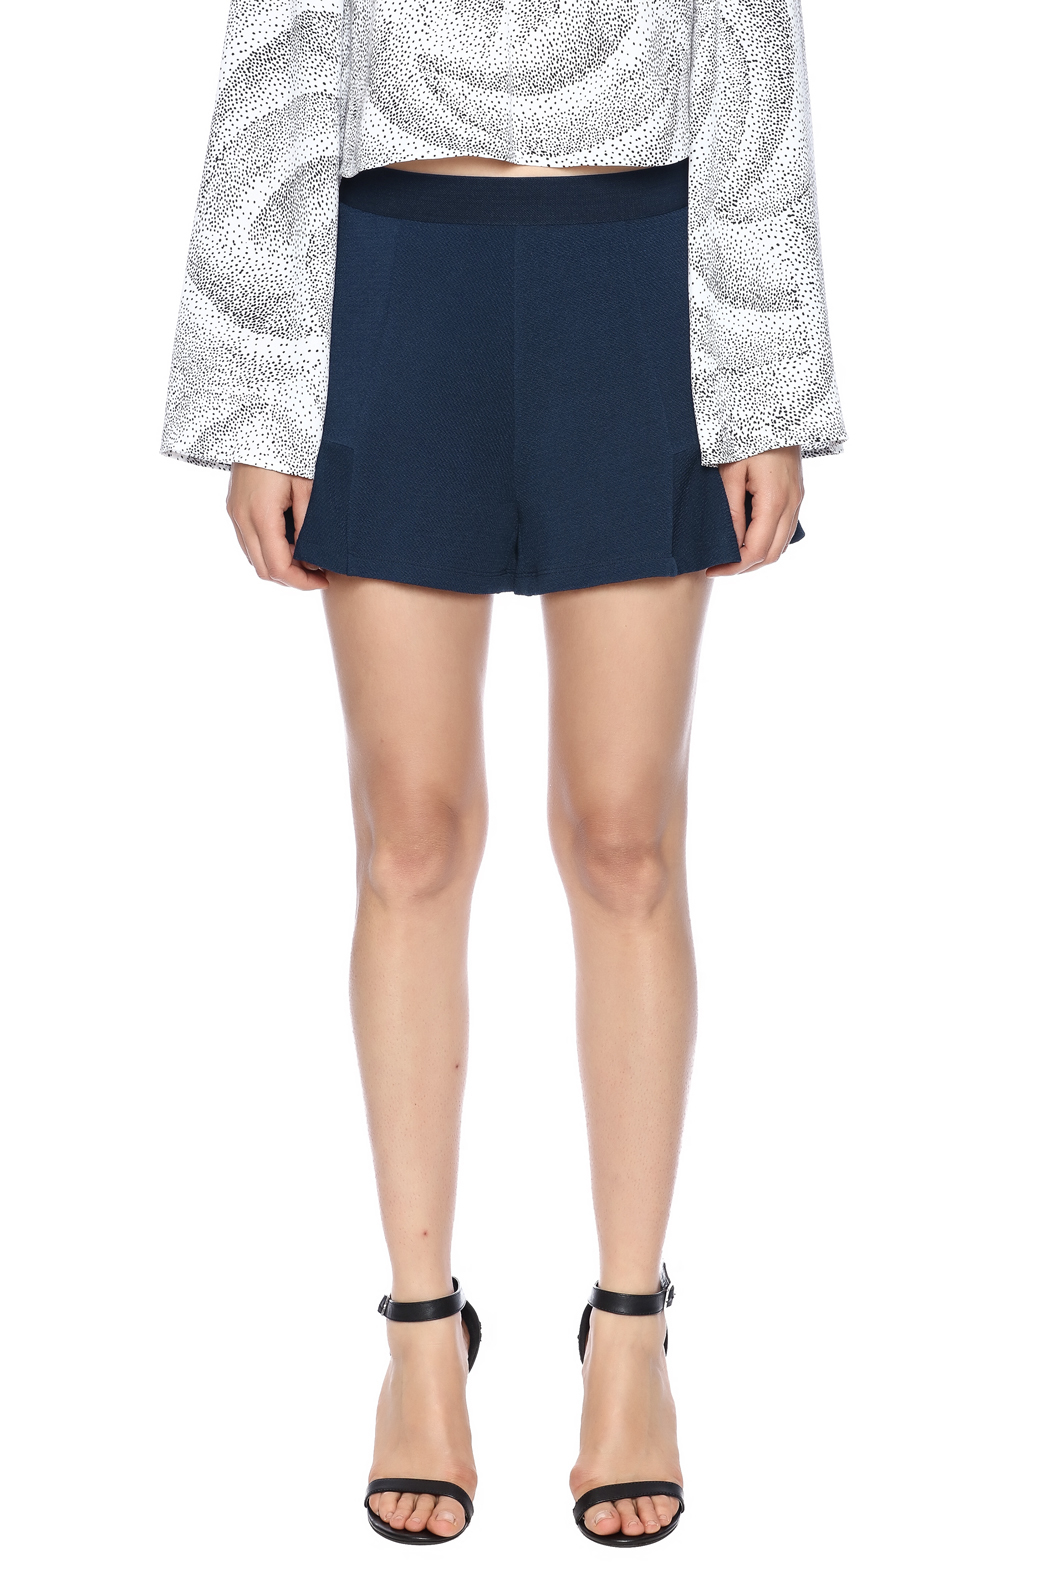 Theo Paris Navy Flare Shorts - Side Cropped Image